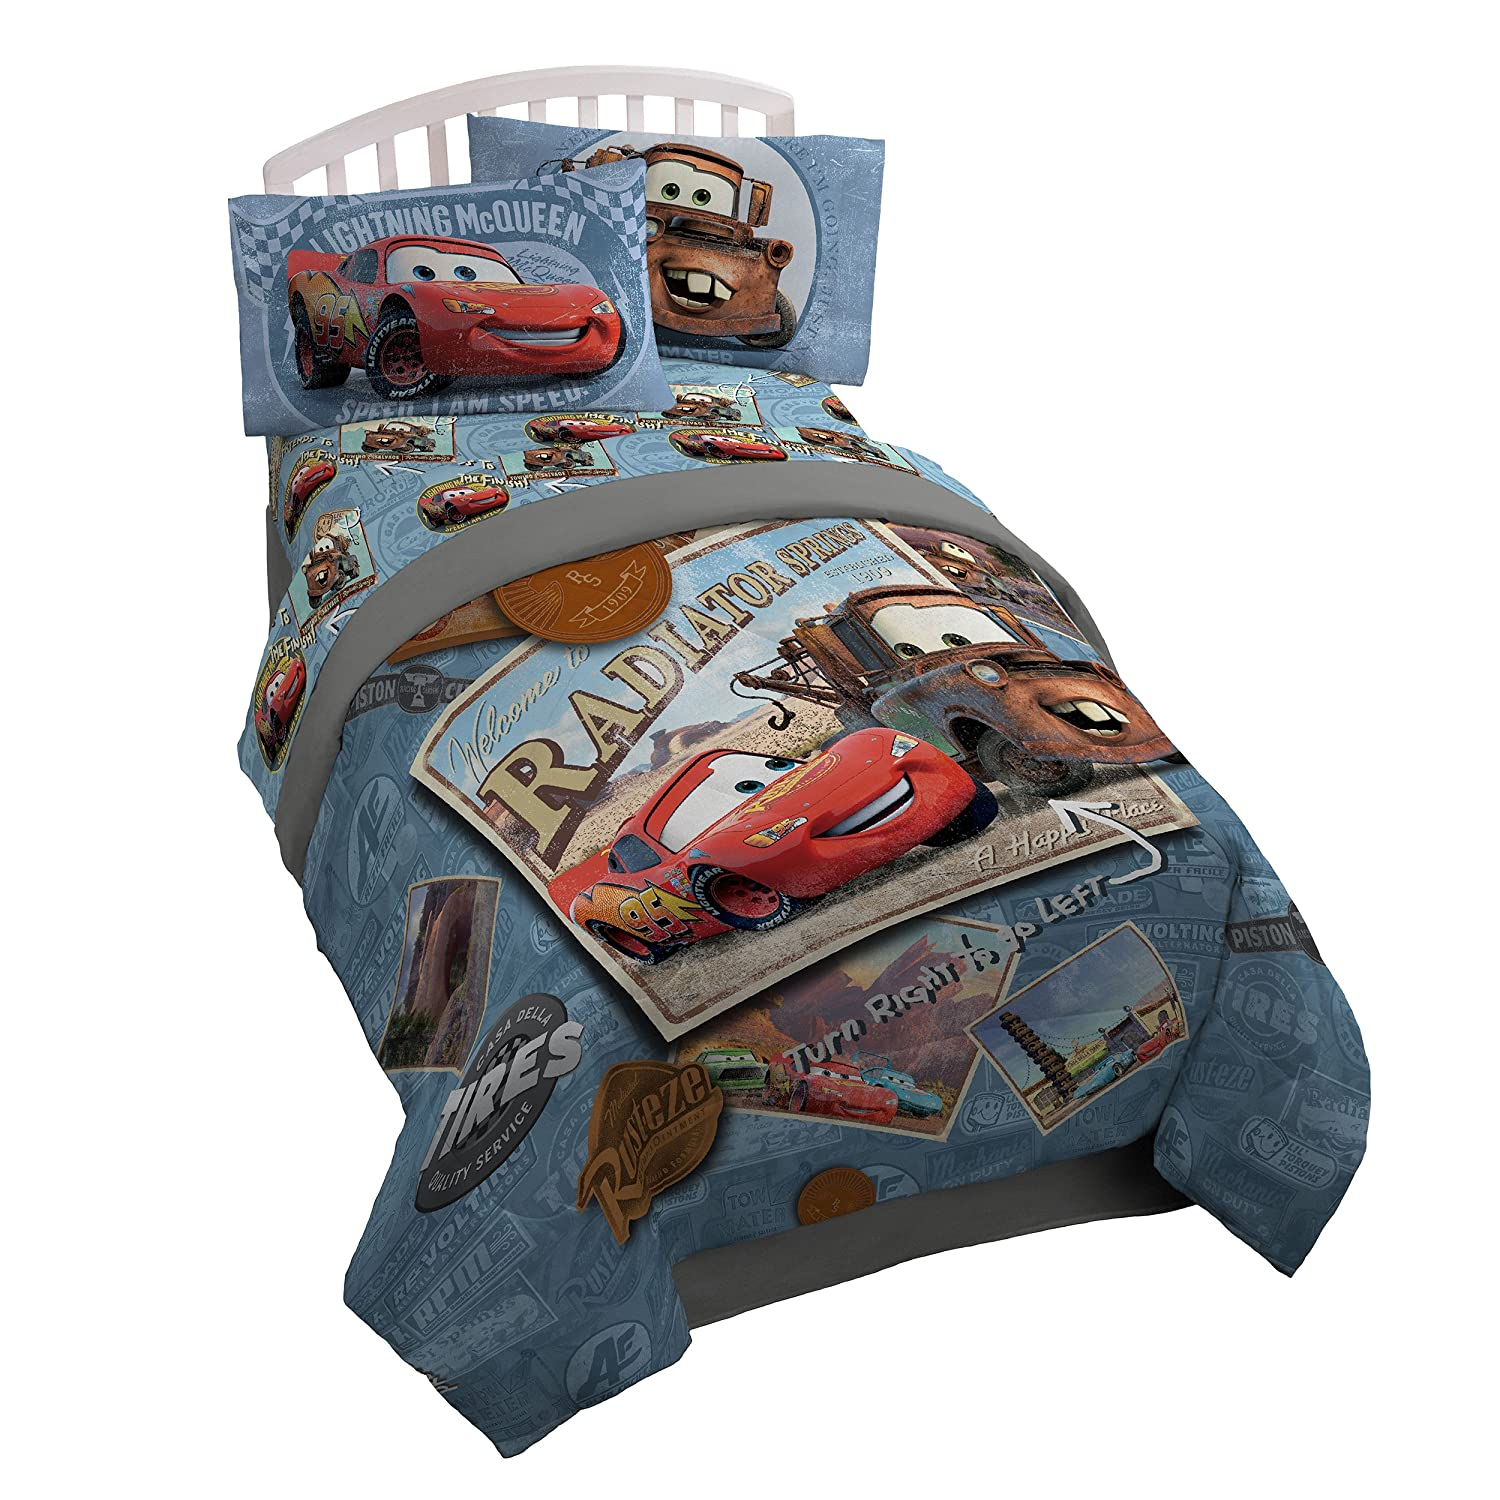 Disney Pixar CarsTune Up Twin/Full Comforter - Super Soft Kids Reversible Bedding features Lightning McQueen and Mater - Fade Resistant Polyester Microfiber Fill (Official Disney Pixar Product)